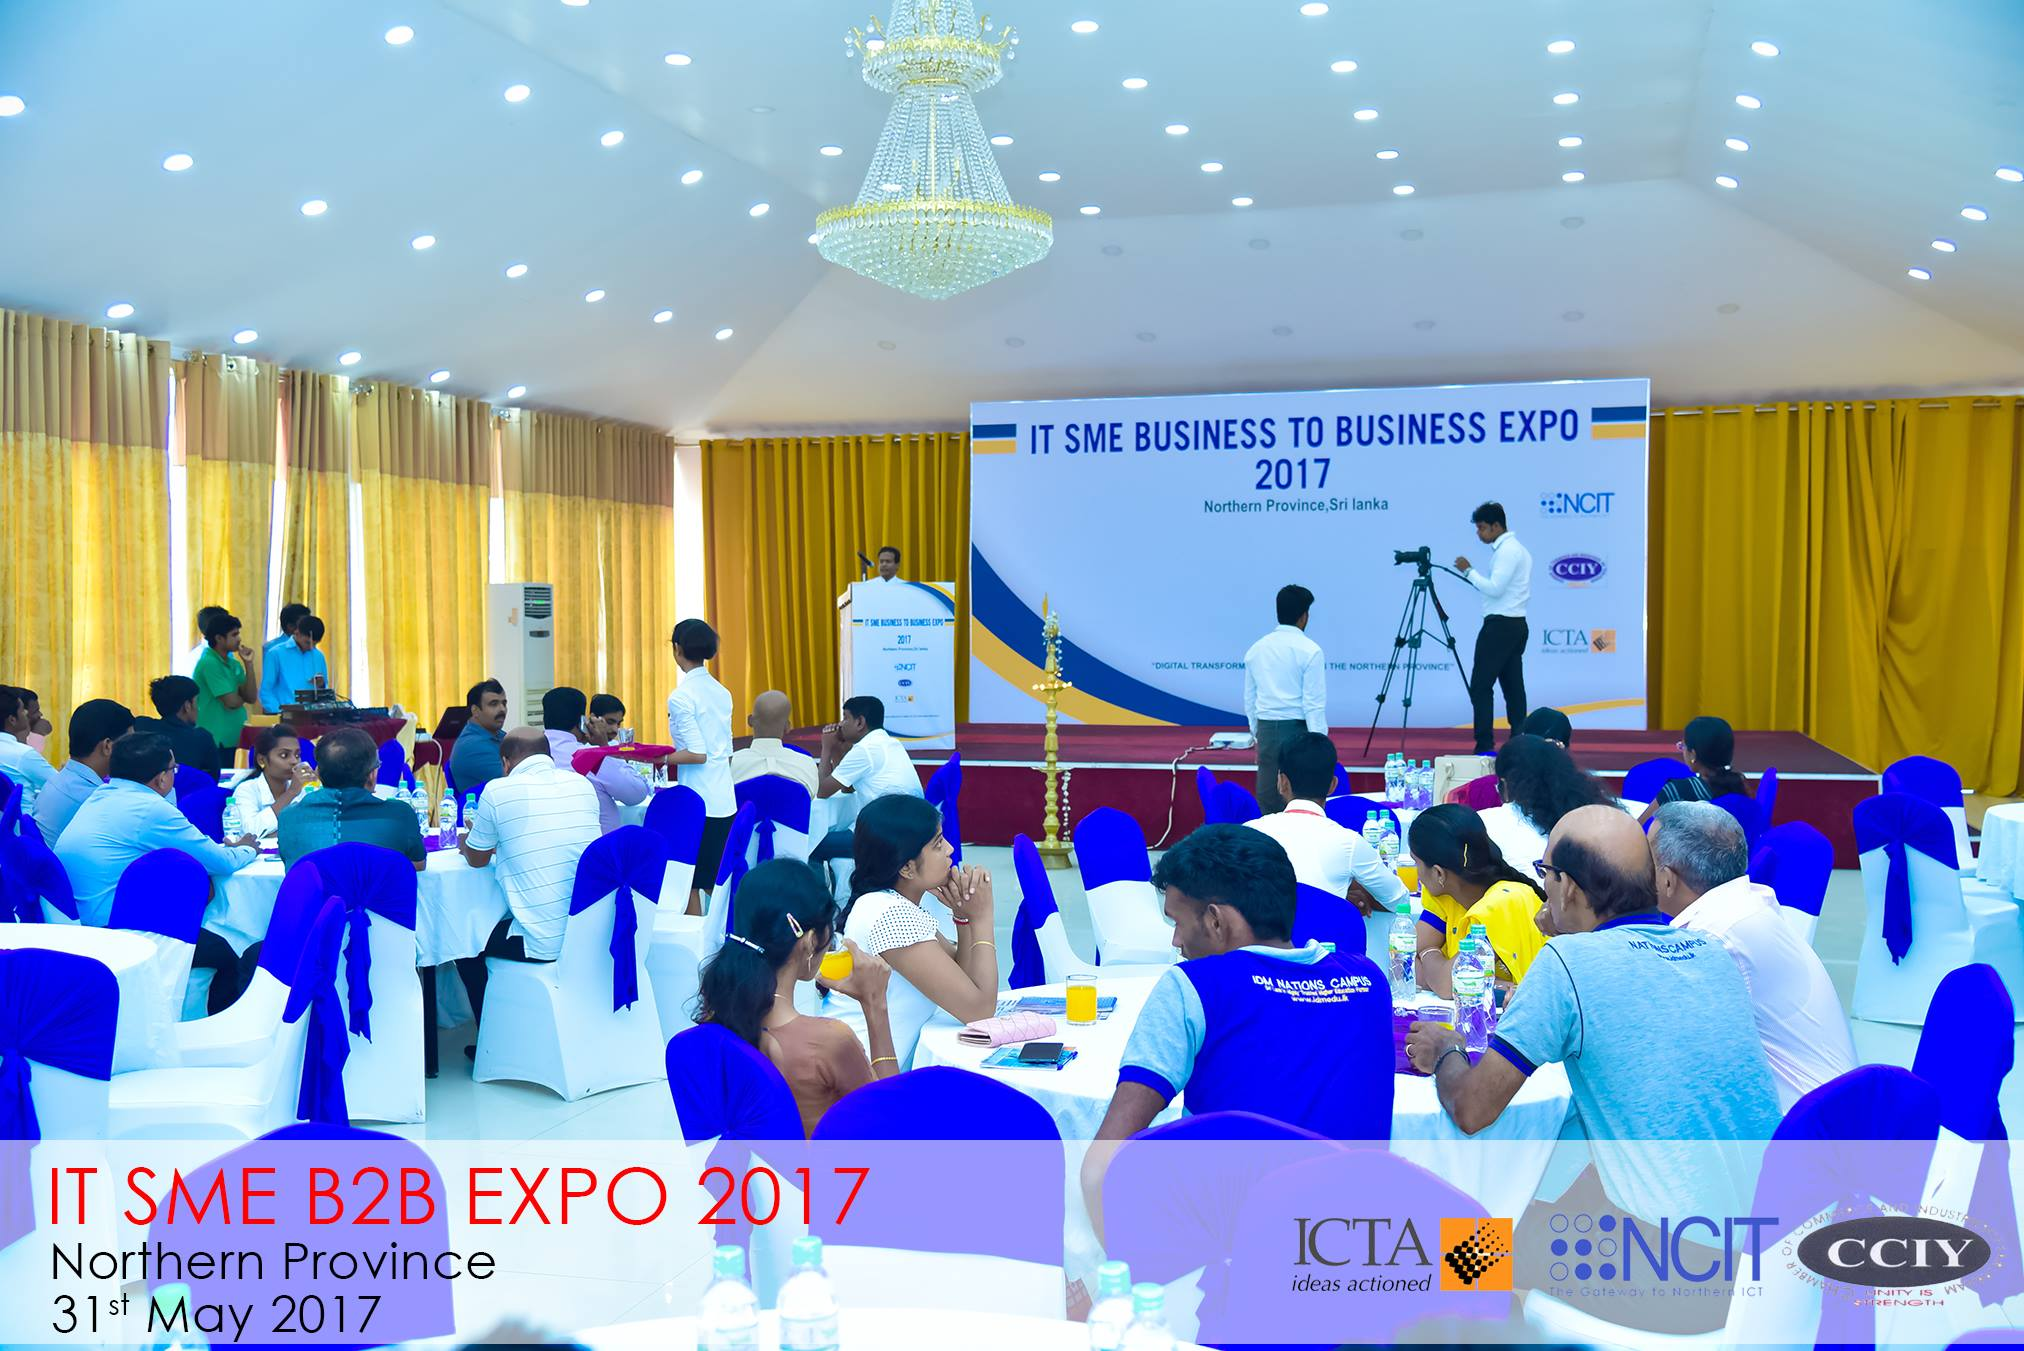 Northern IT SME Business to Business Expo 2017  Organized in grant scale for SMEs in Northern Province